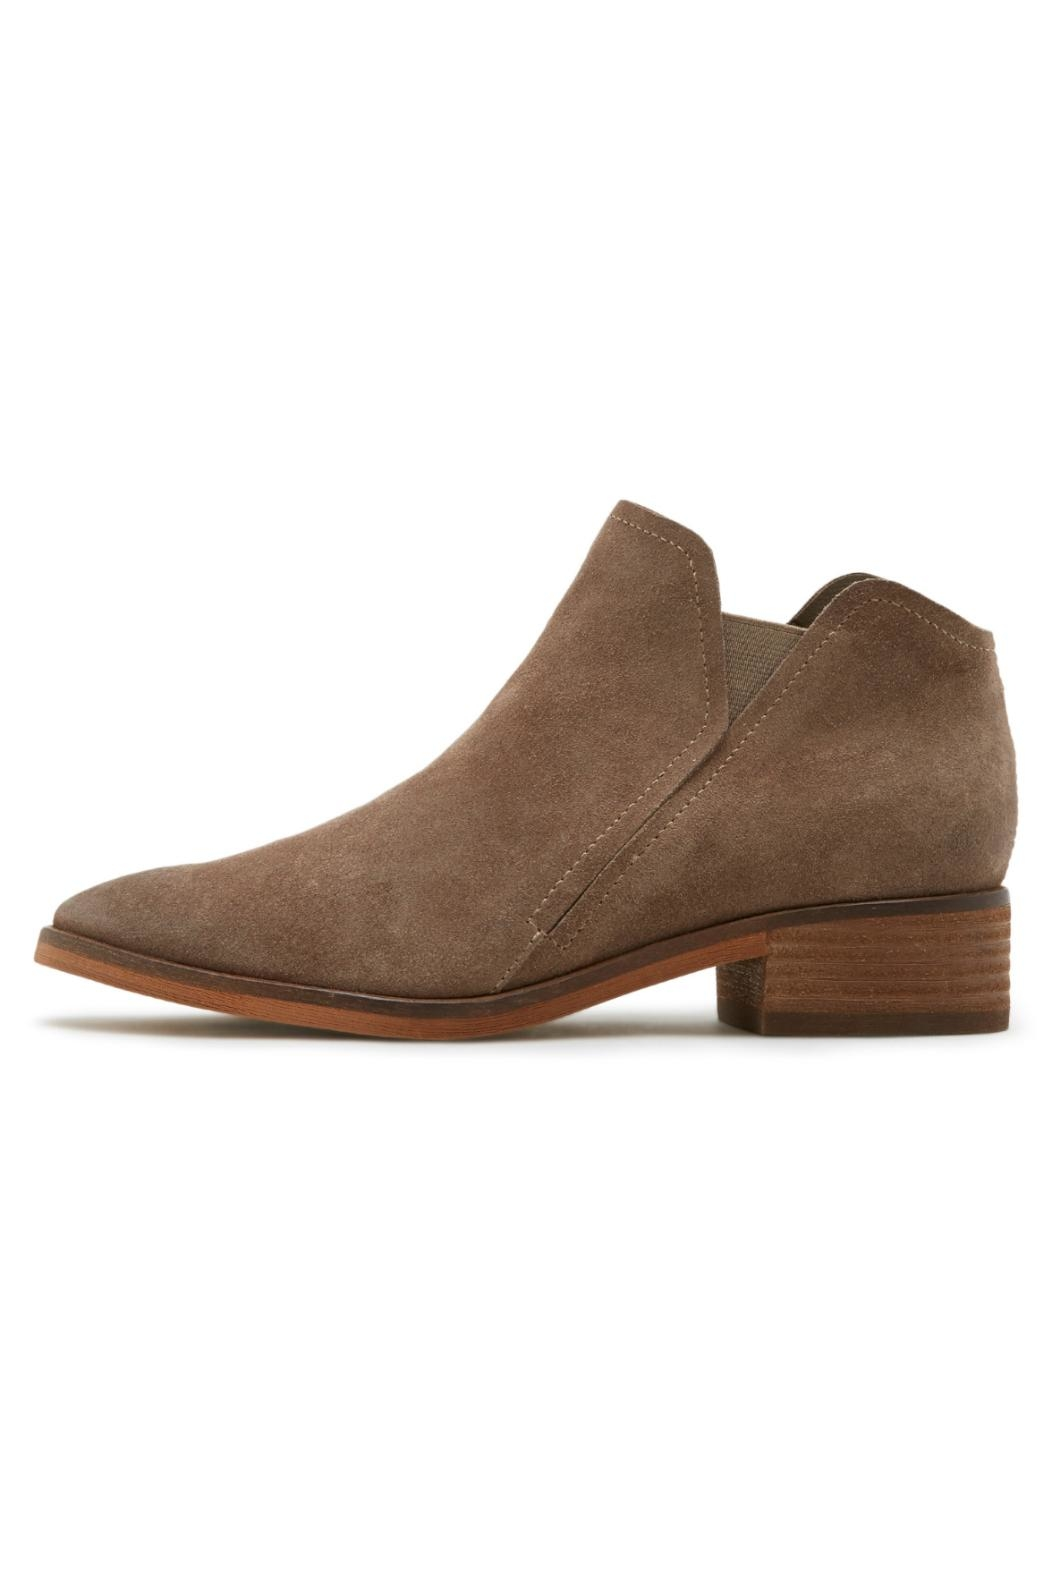 Dolce Vita Tay Suede Bootie - Front Cropped Image